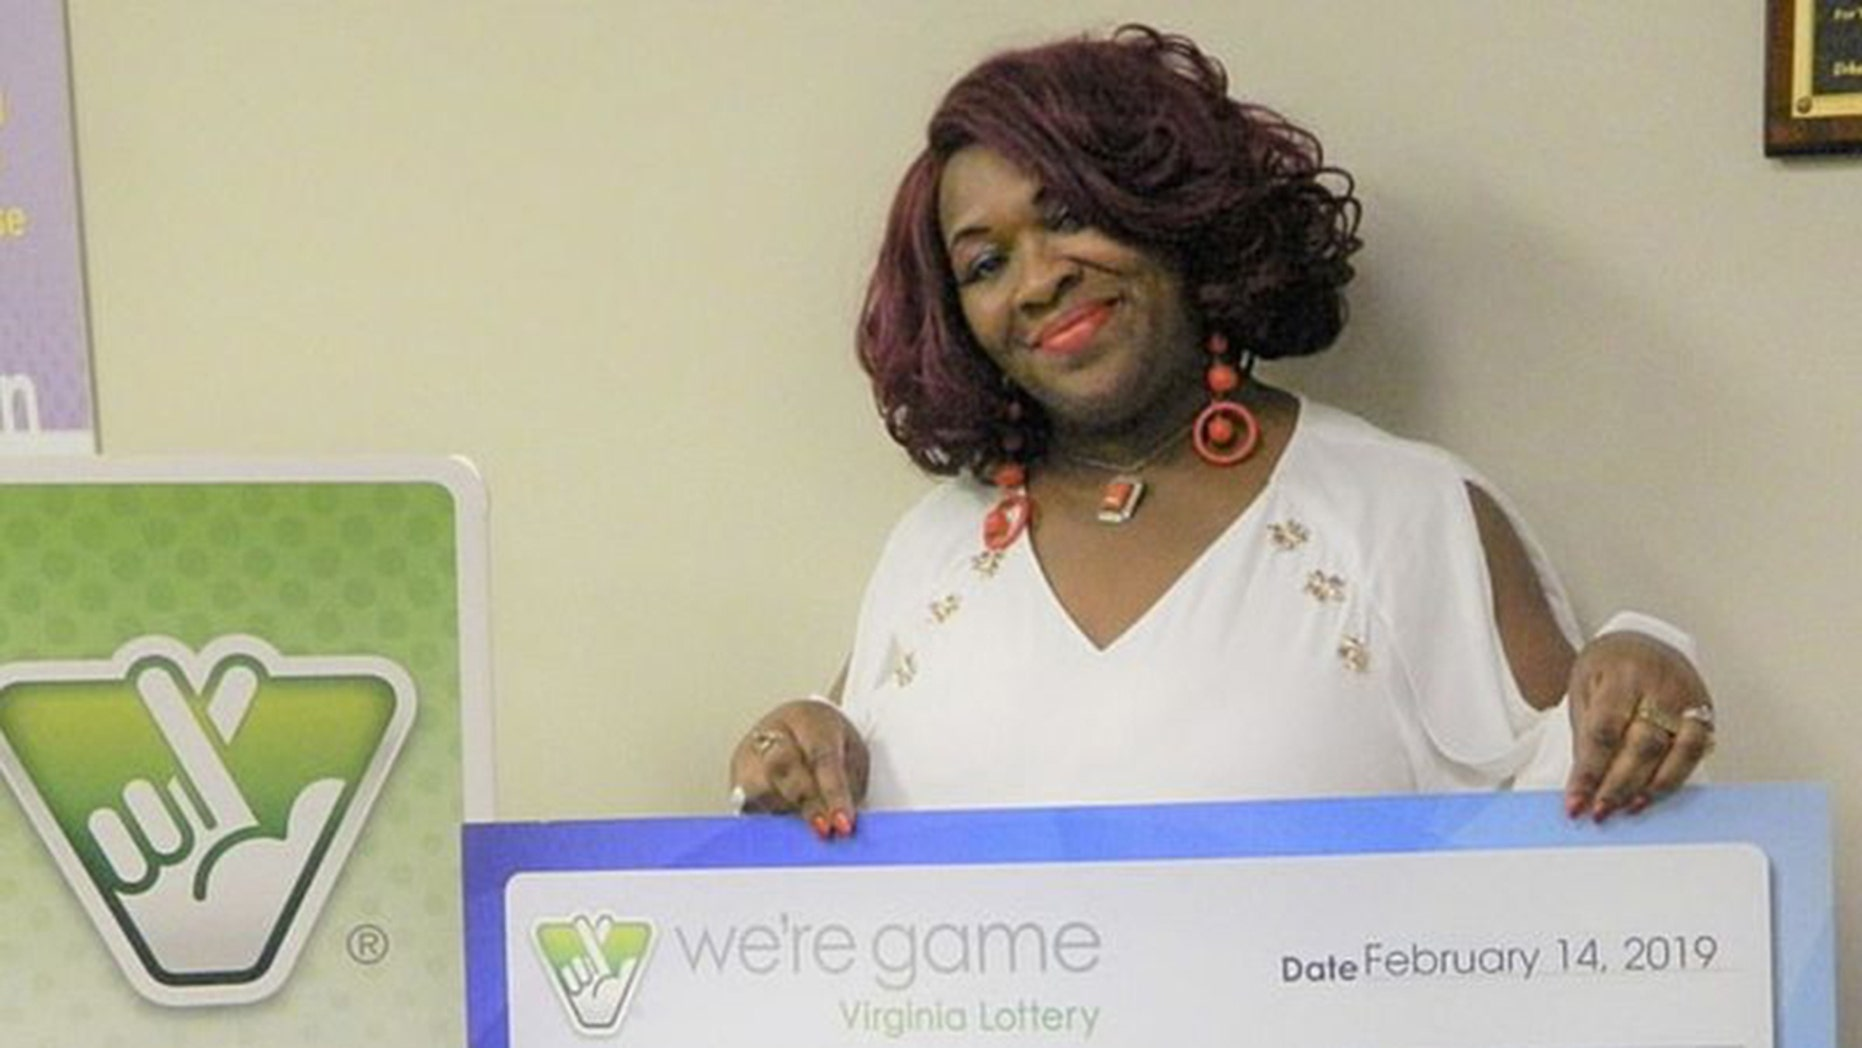 Deborah Brown, of Richmond, Virginia, won $150,000 after playing the same four number sequence 30 times on $1 lottery tickets